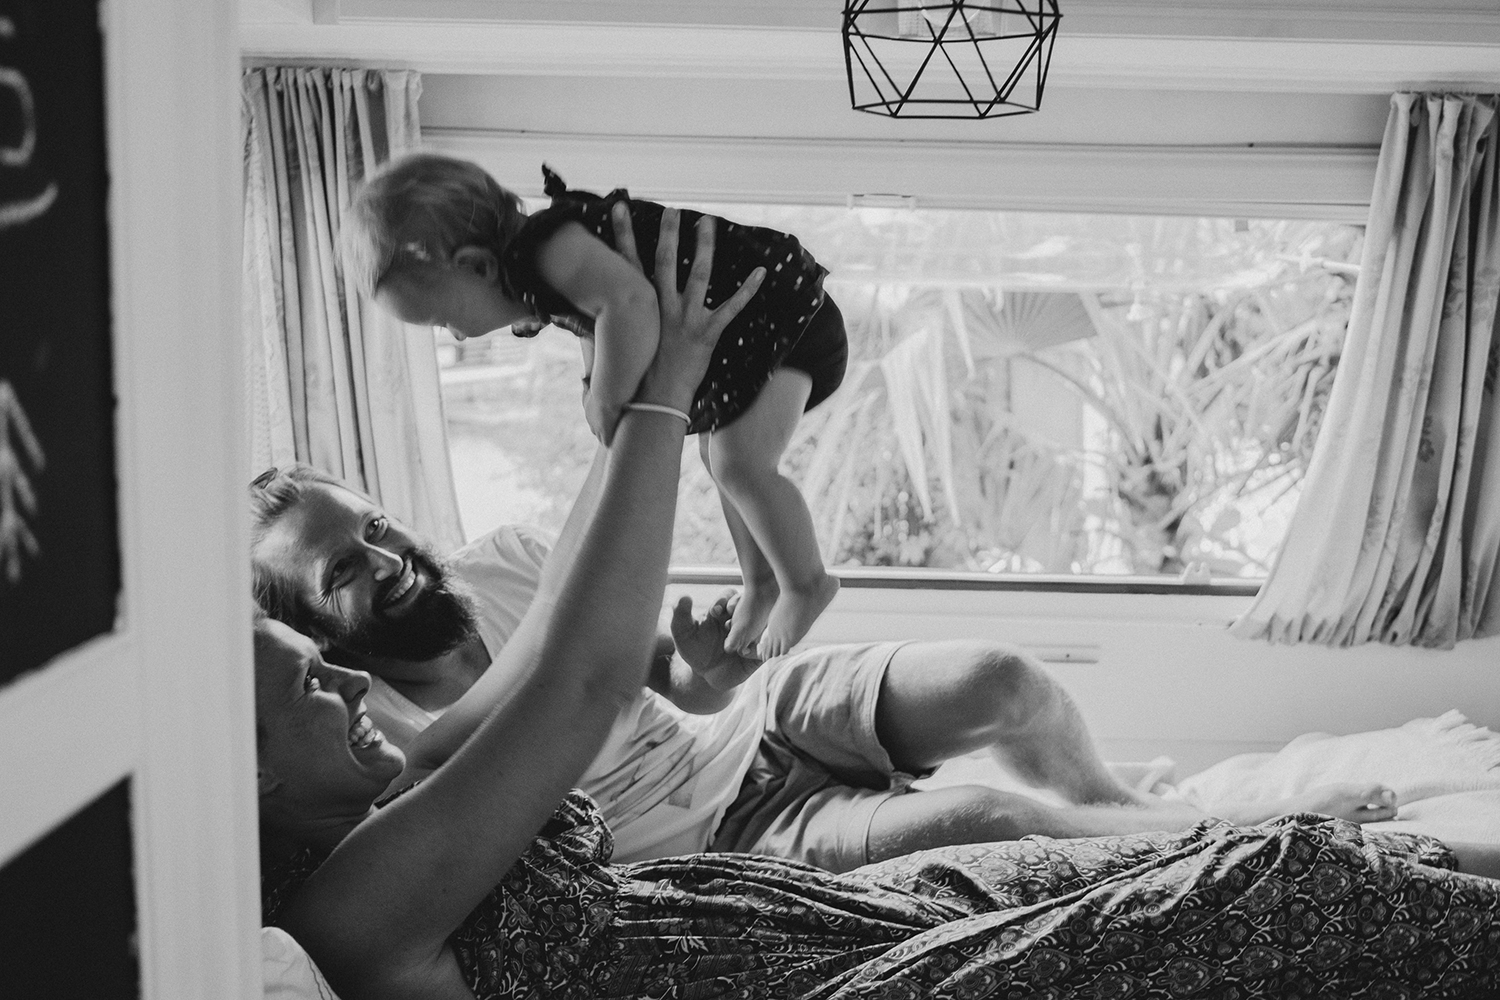 rebecca rinaldi photography. Family photographer in Italy. The family playing in the vintage trailer.